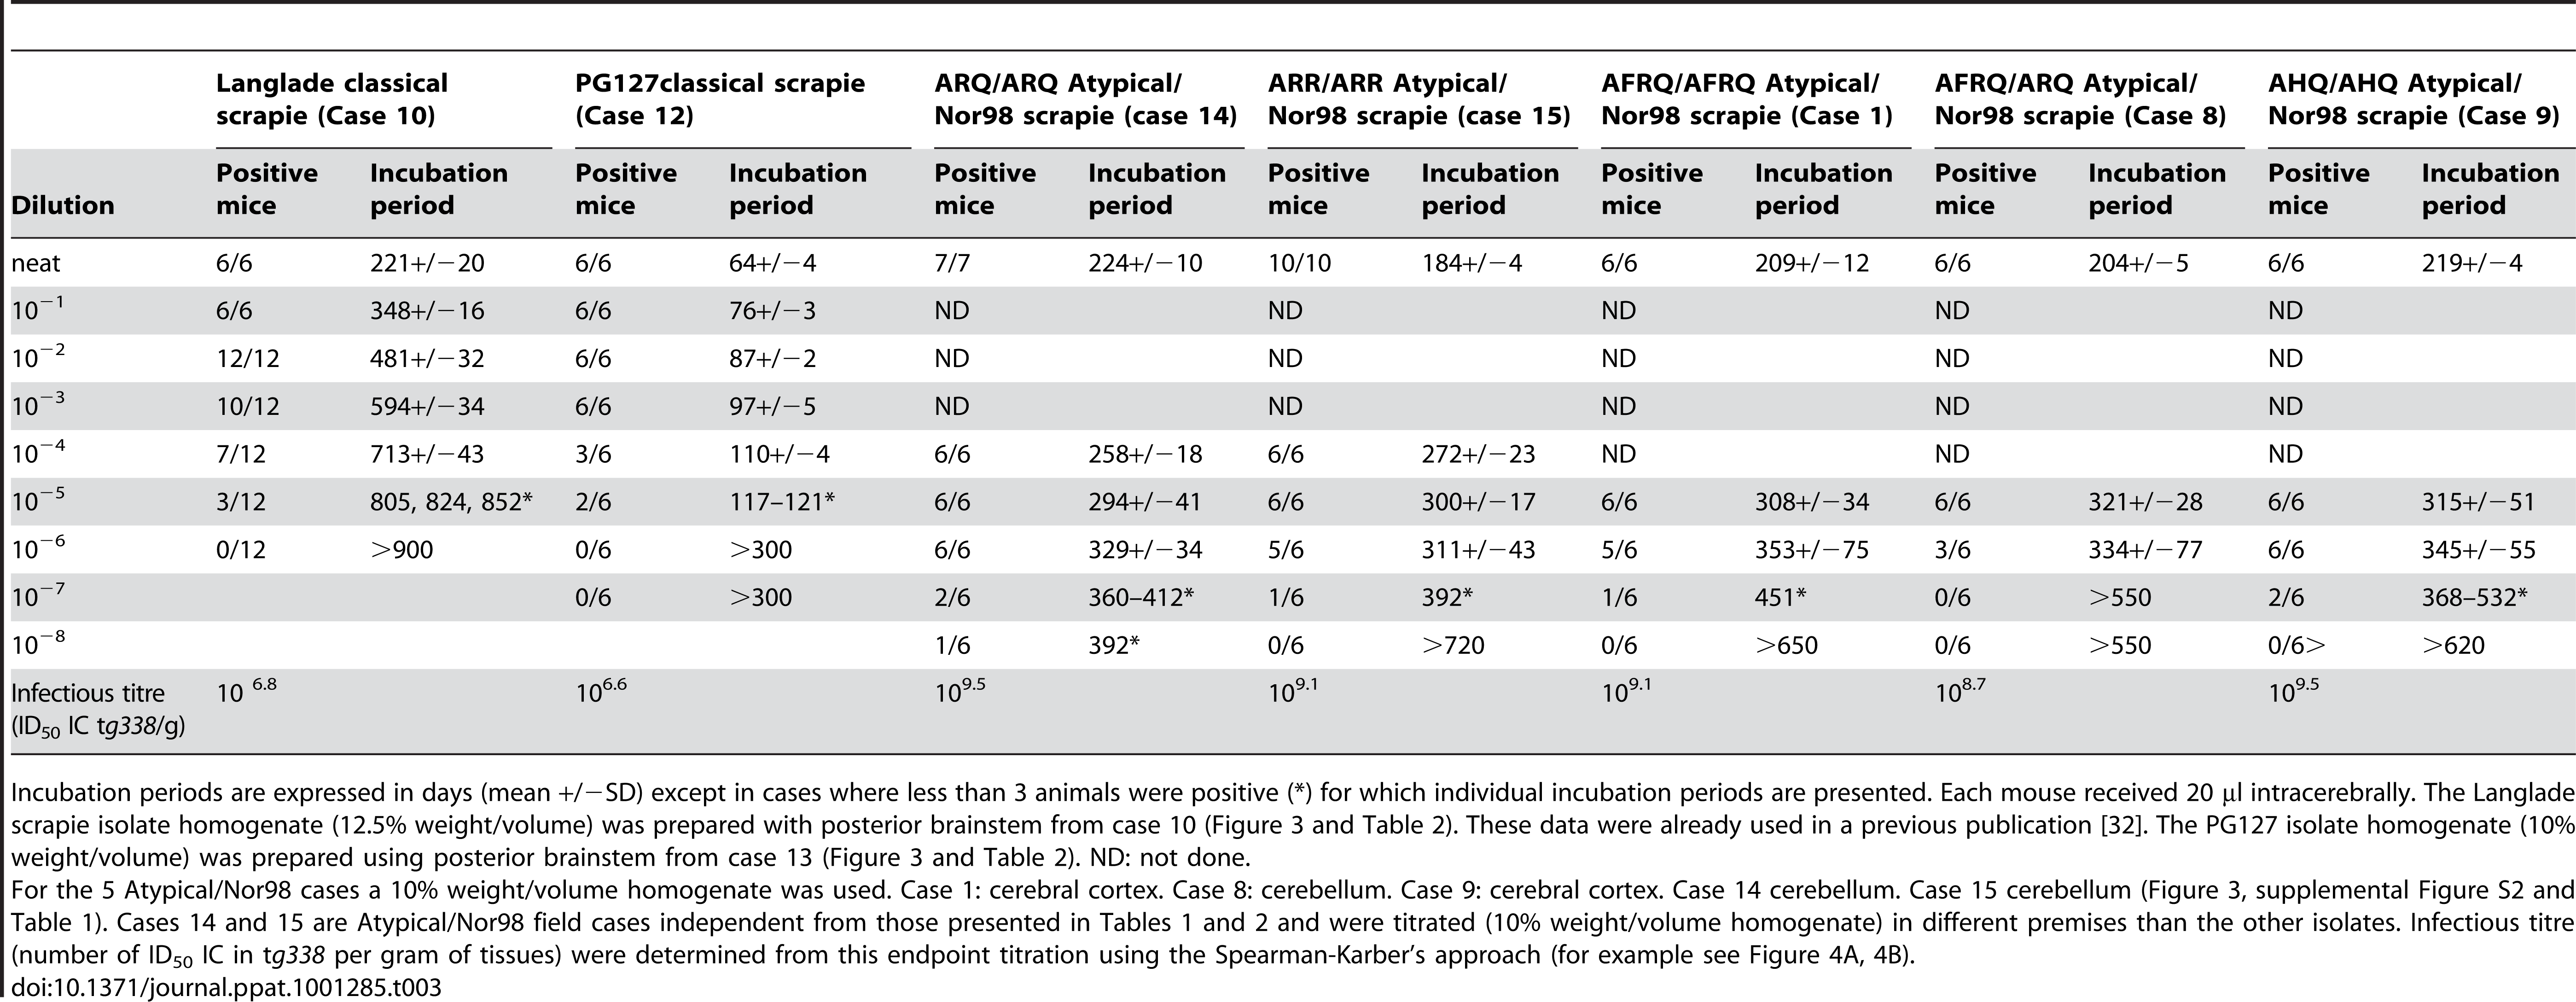 Classical scrapie and Atypical/Nor98 scrapie isolates endpoint titration and infectious titre in ovine PrP transgenic mice (<i>tg338</i>).